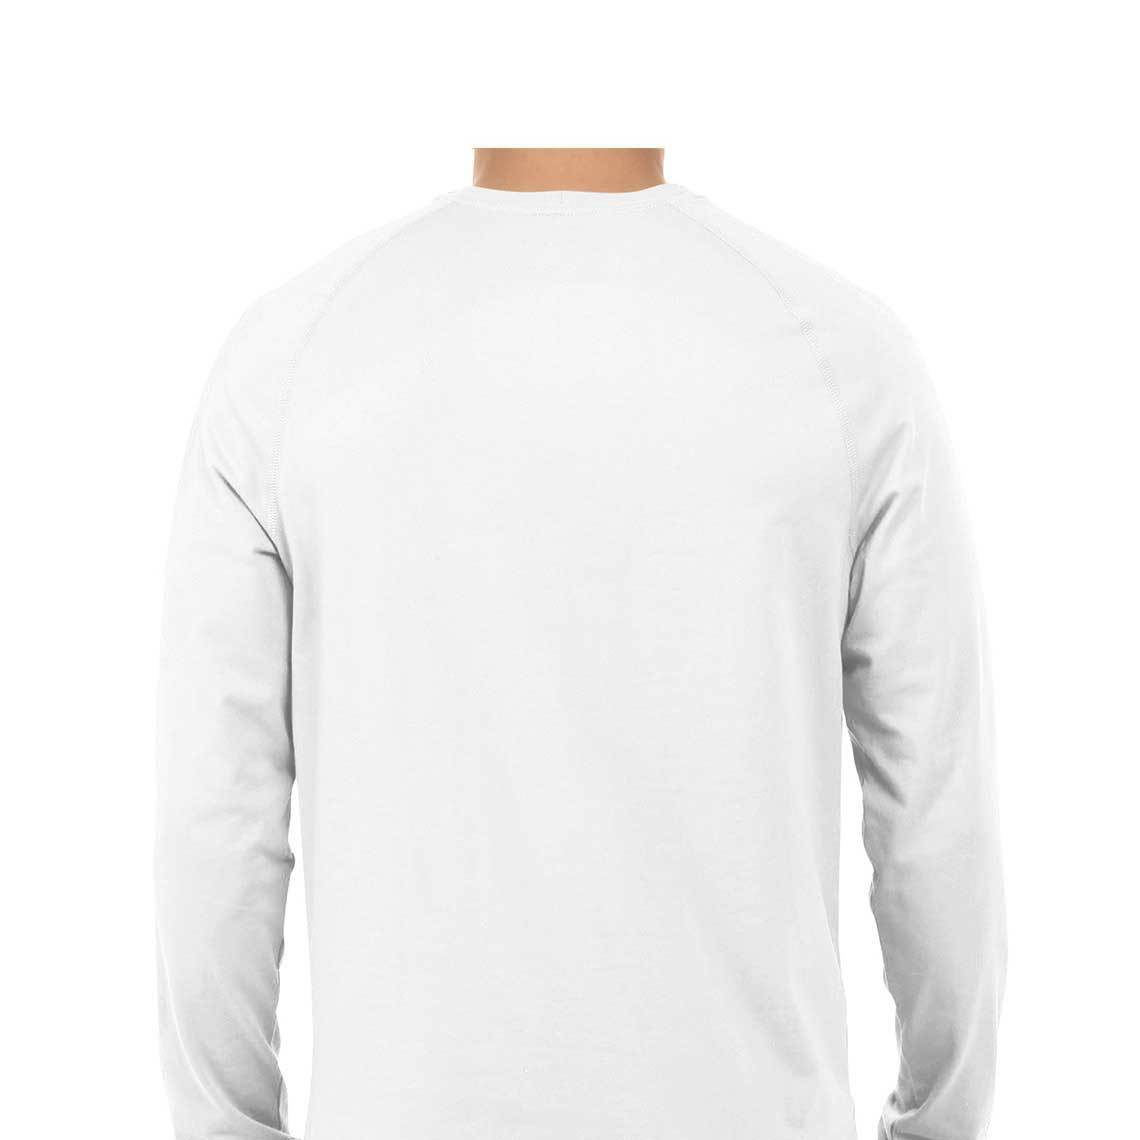 Men's Basics - White Round Neck Full Sleeves T-shirt